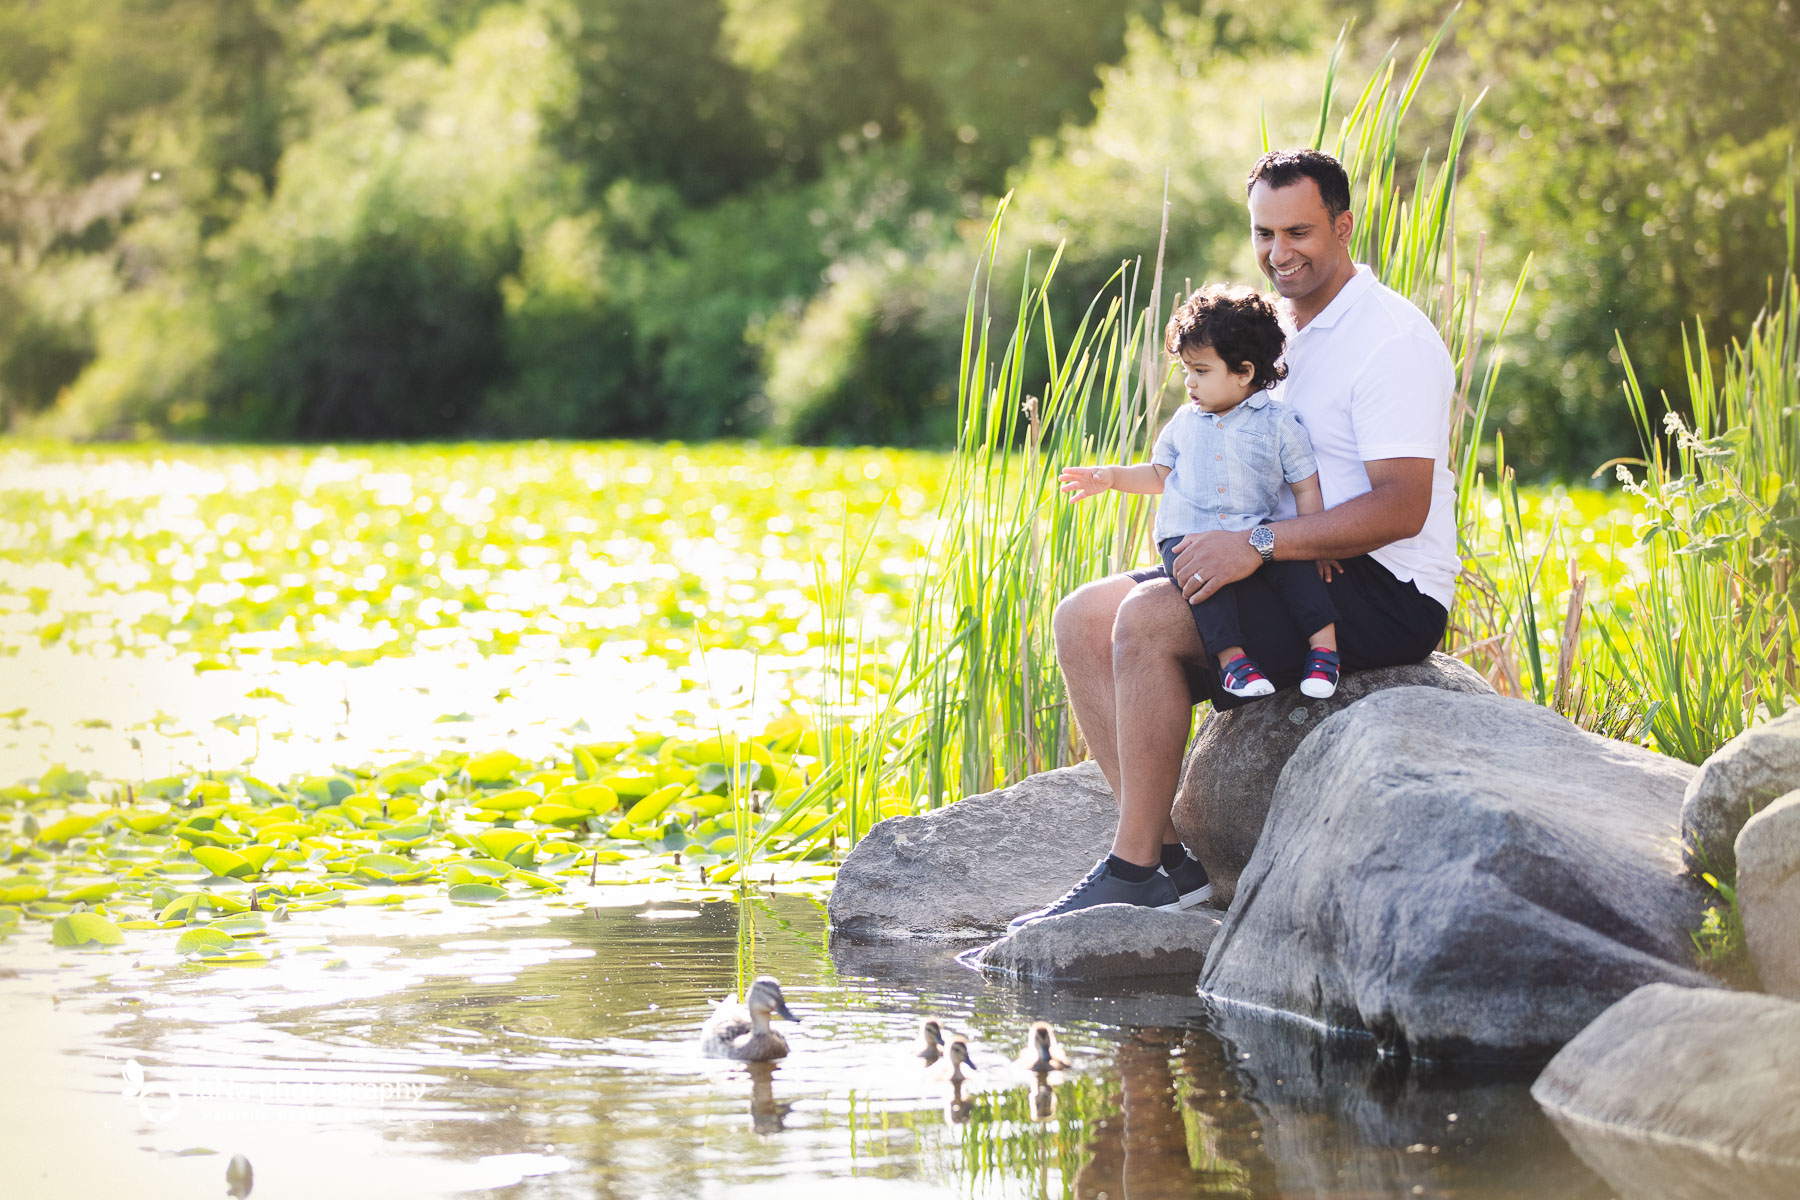 Vancouver outdoor photography - dad and baby - family